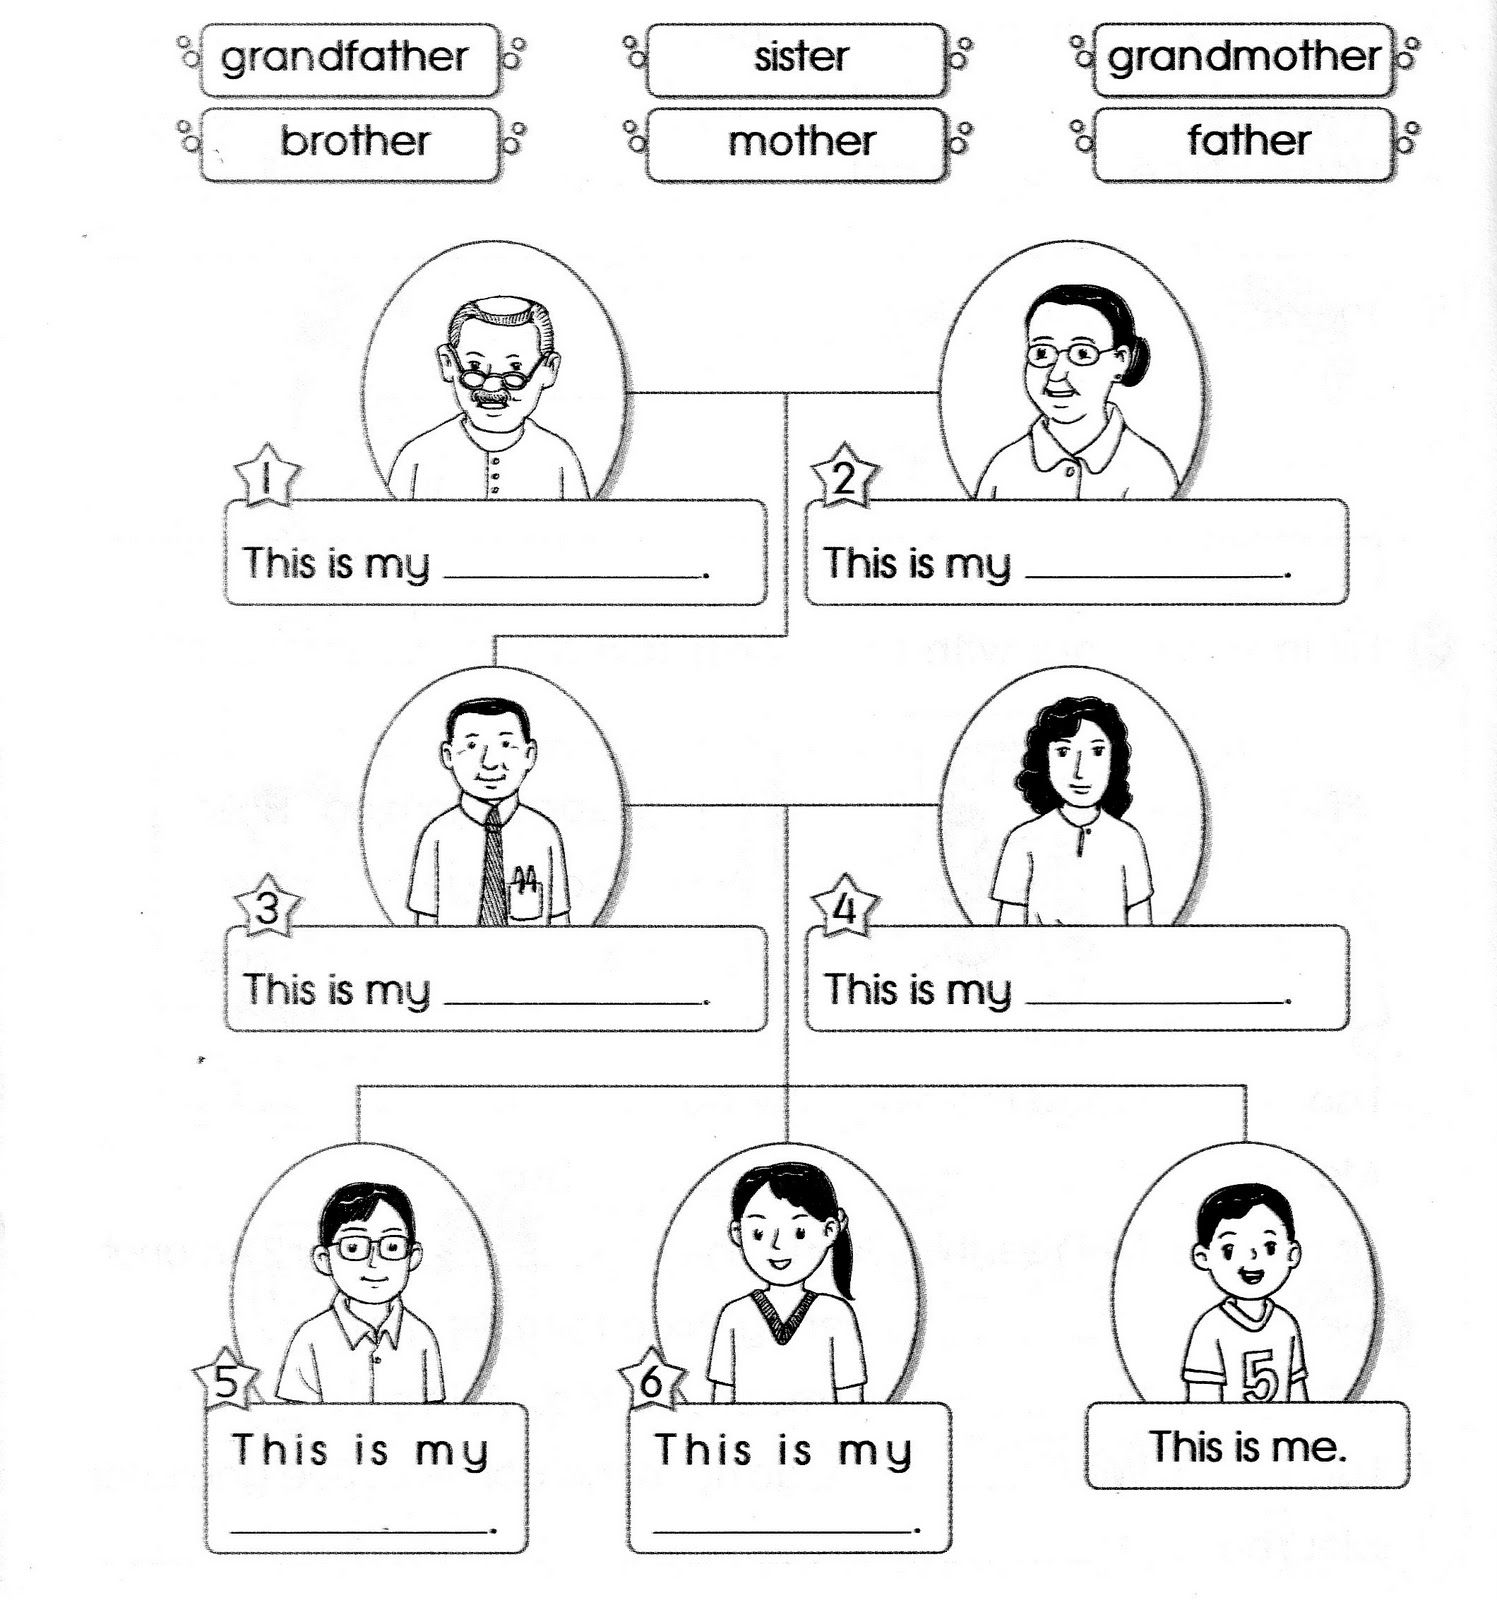 worksheet Family Worksheets 10 best images about english on pinterest grammar lessons free printable word searches and student centered resources